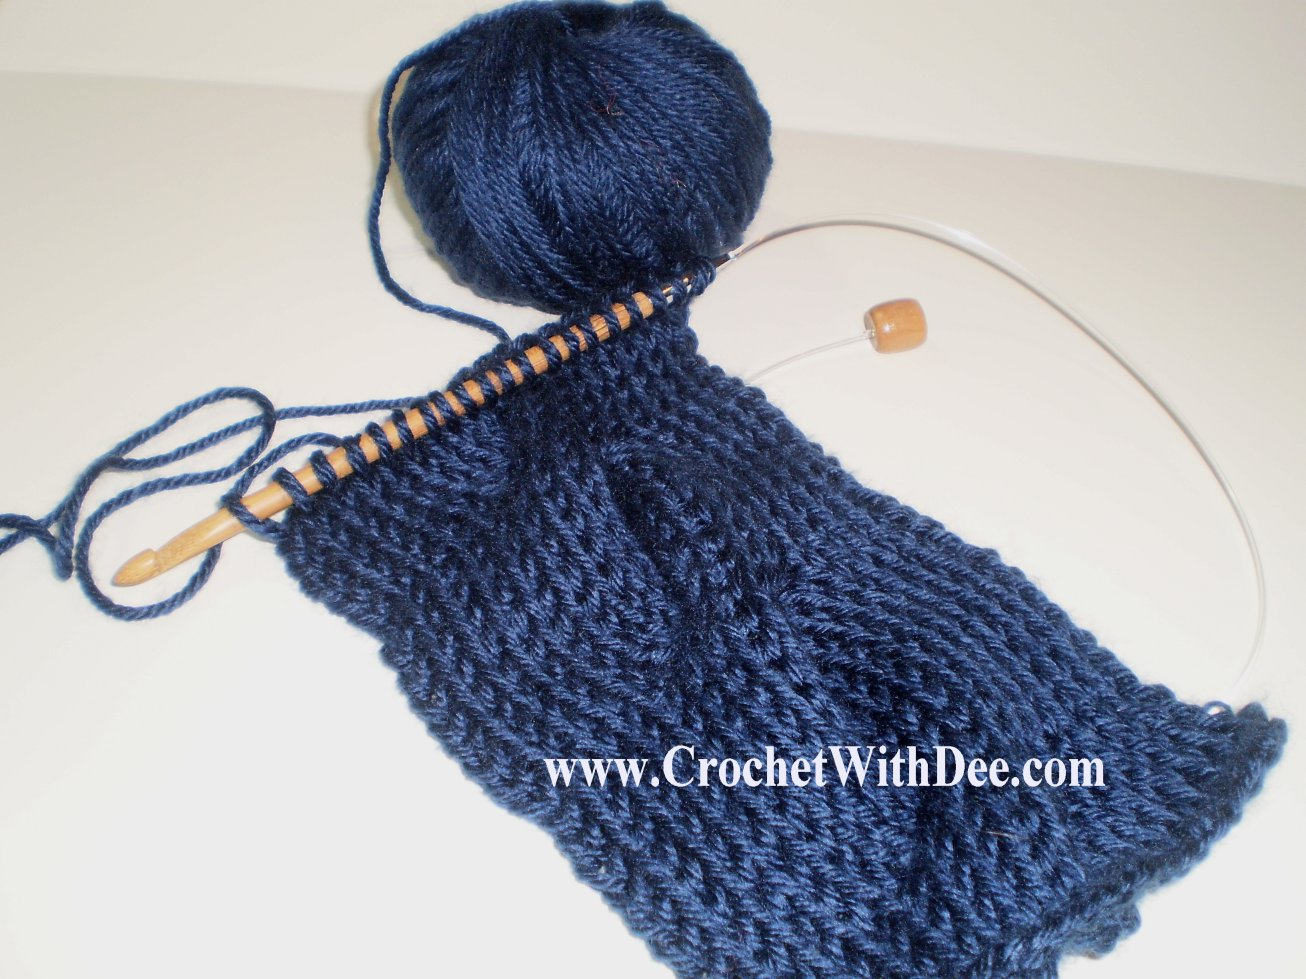 Crocheting Classes : CrochetingWithDee.com: 60/60 leads to taking a crochet class